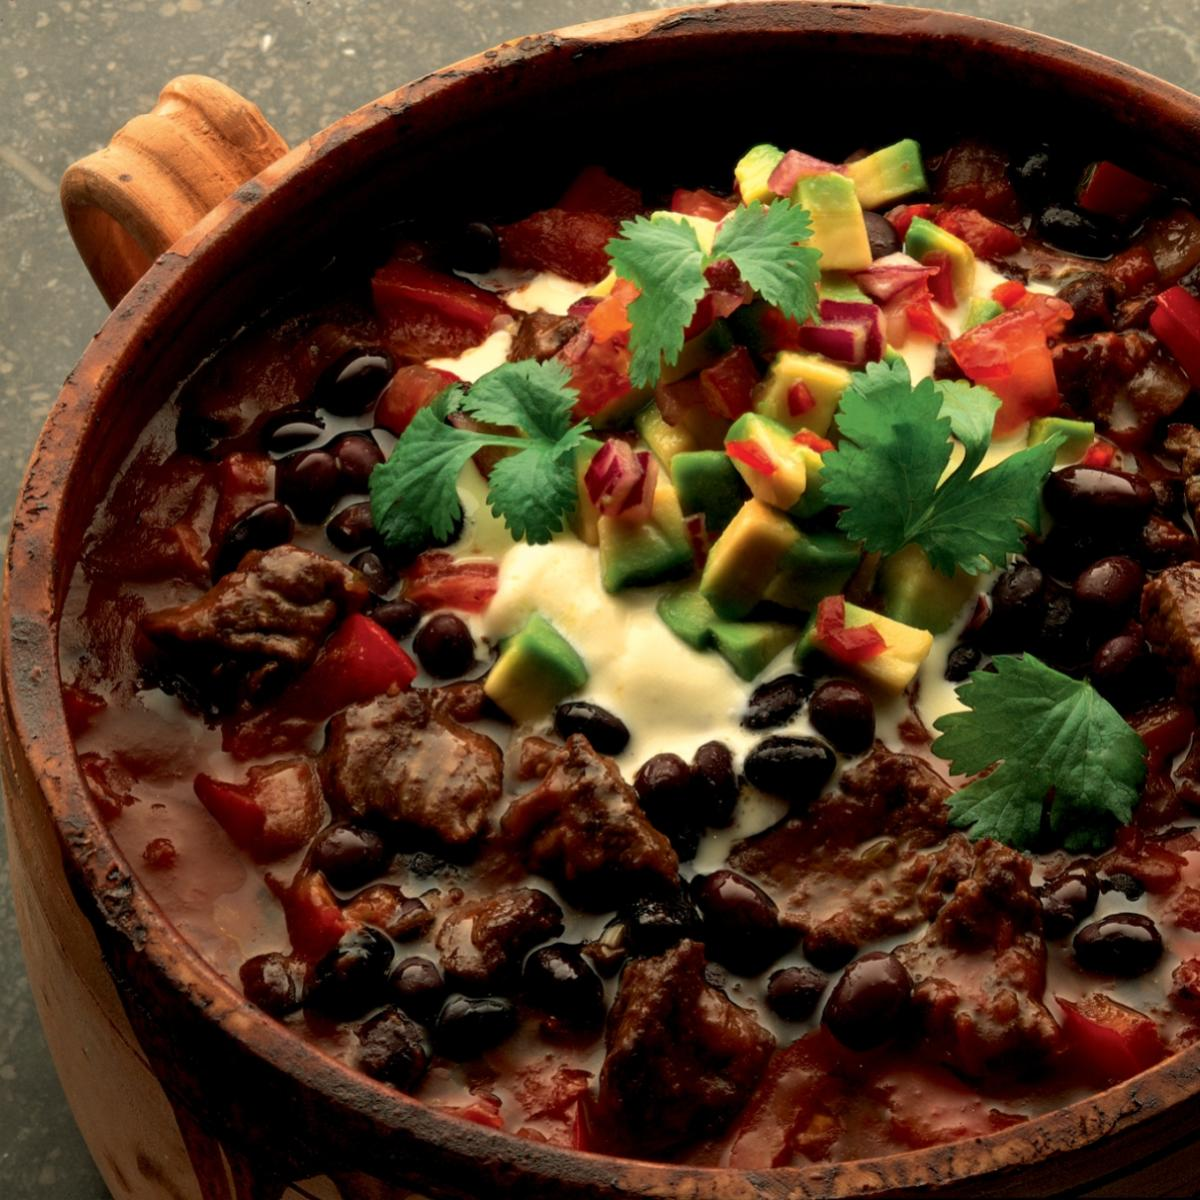 A picture of Delia's Black Bean Chilli with Avocado Salsa recipe